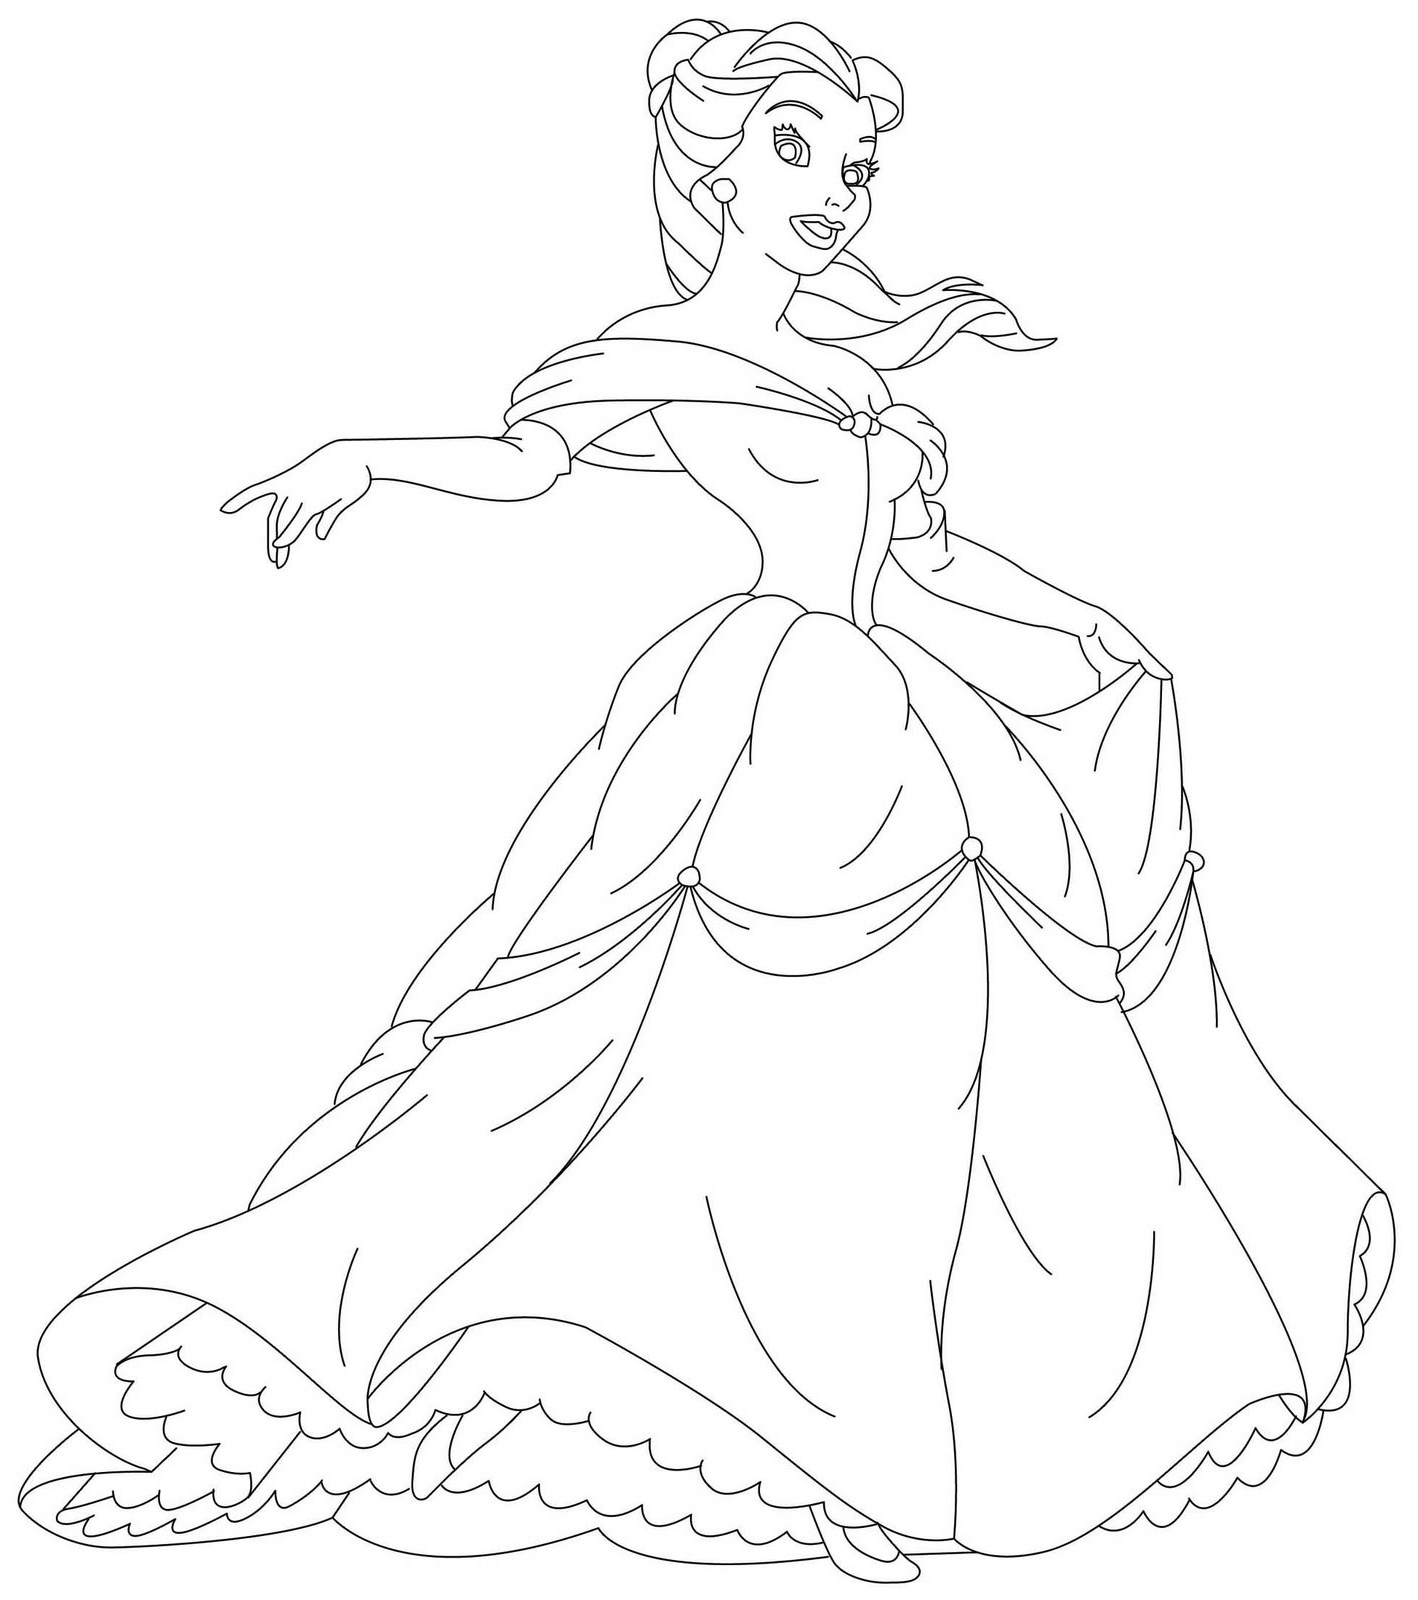 1418x1600 Disney Princess Belle Coloring Pages Free Coloring Pages For Kids